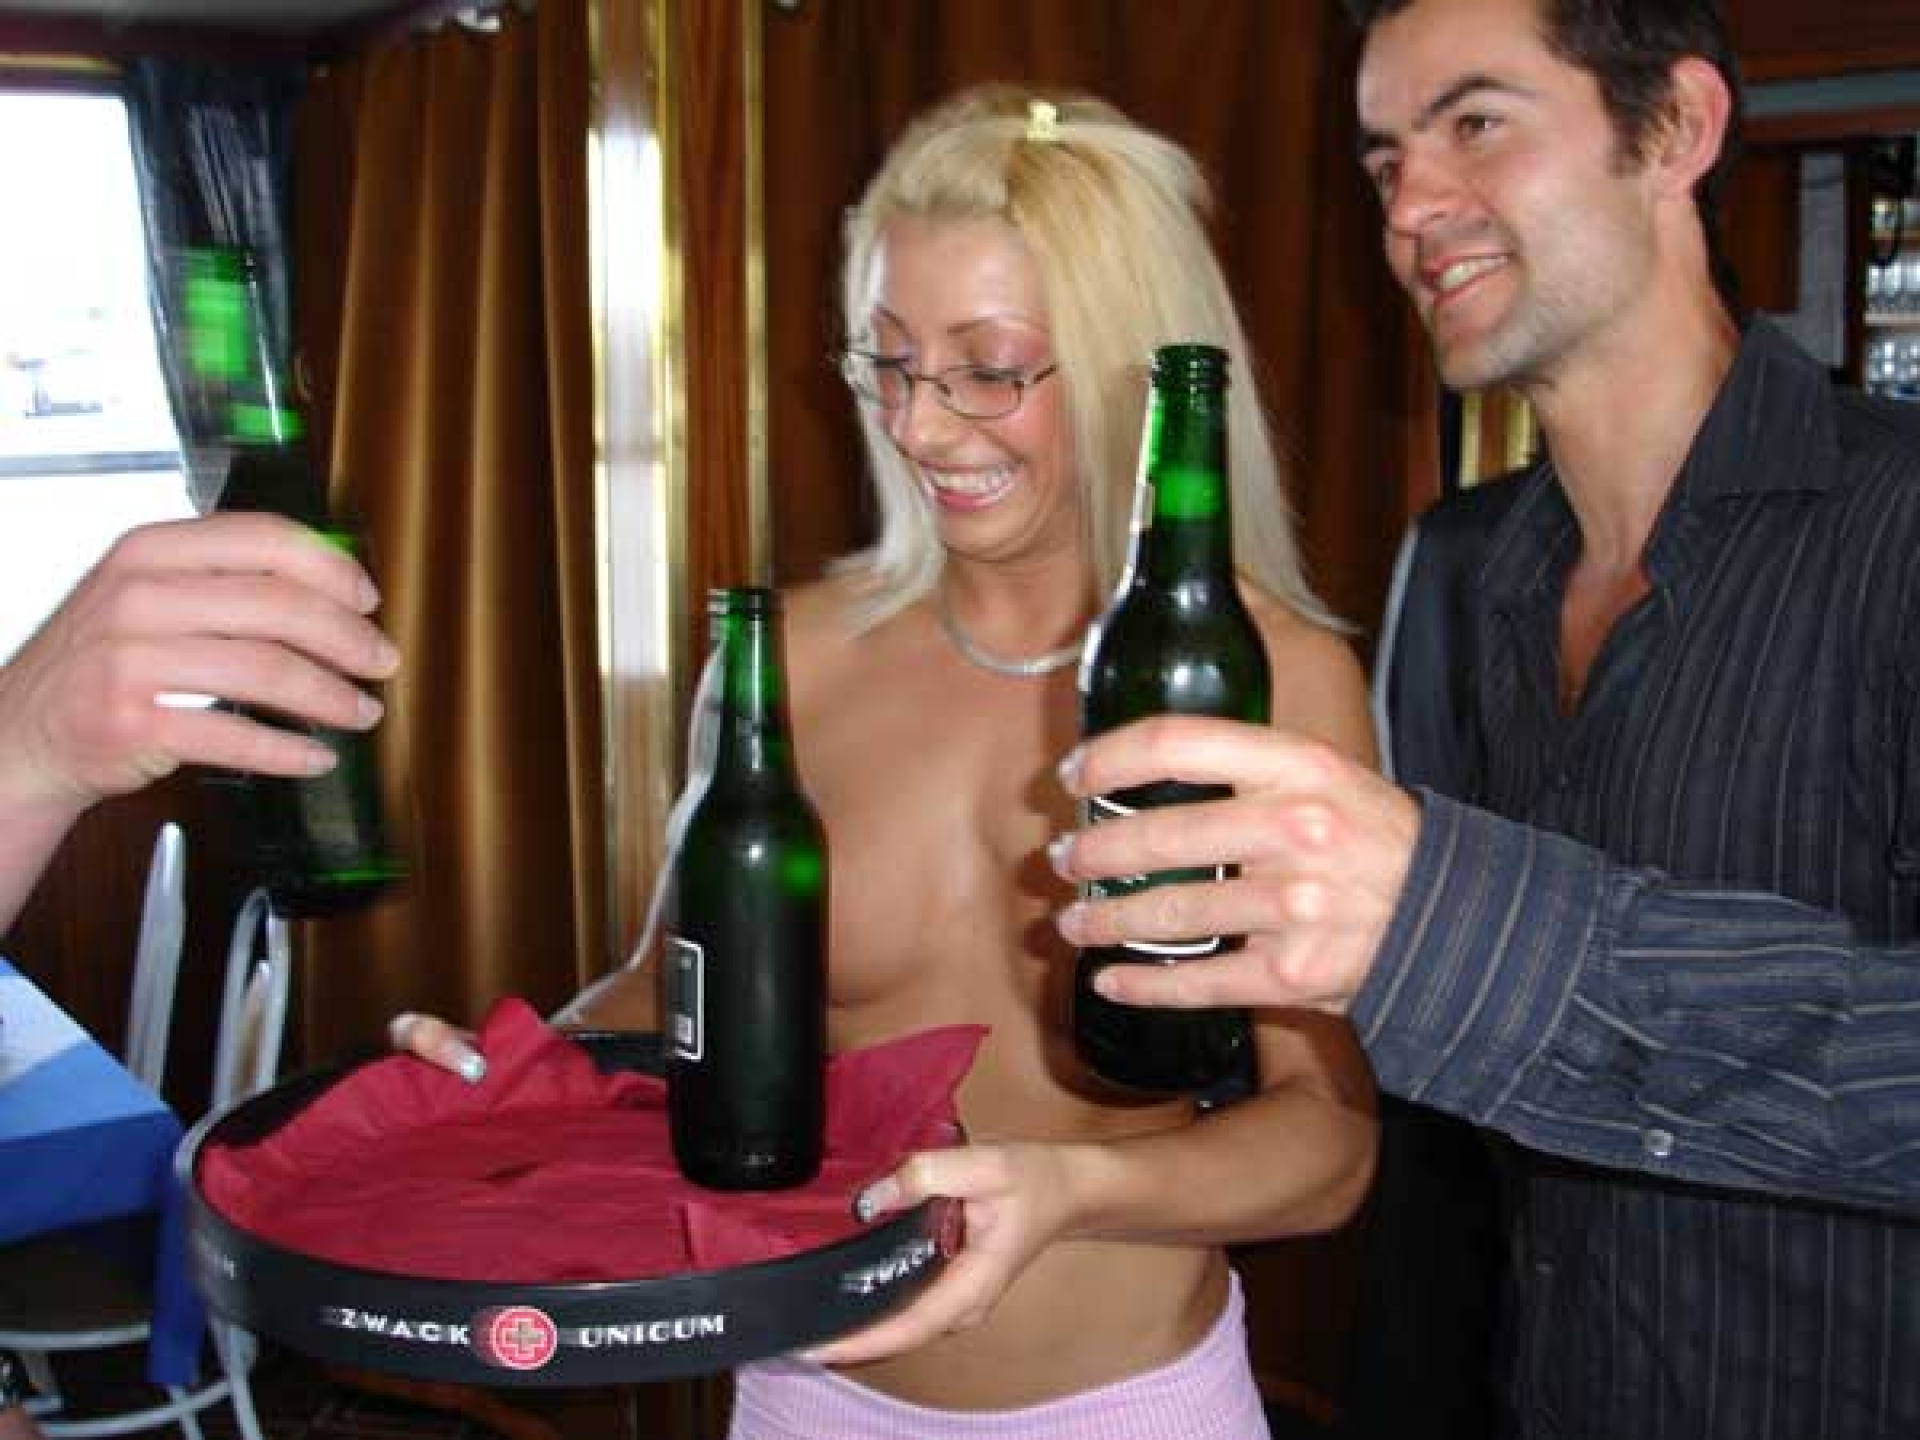 Topless hostess with Beer